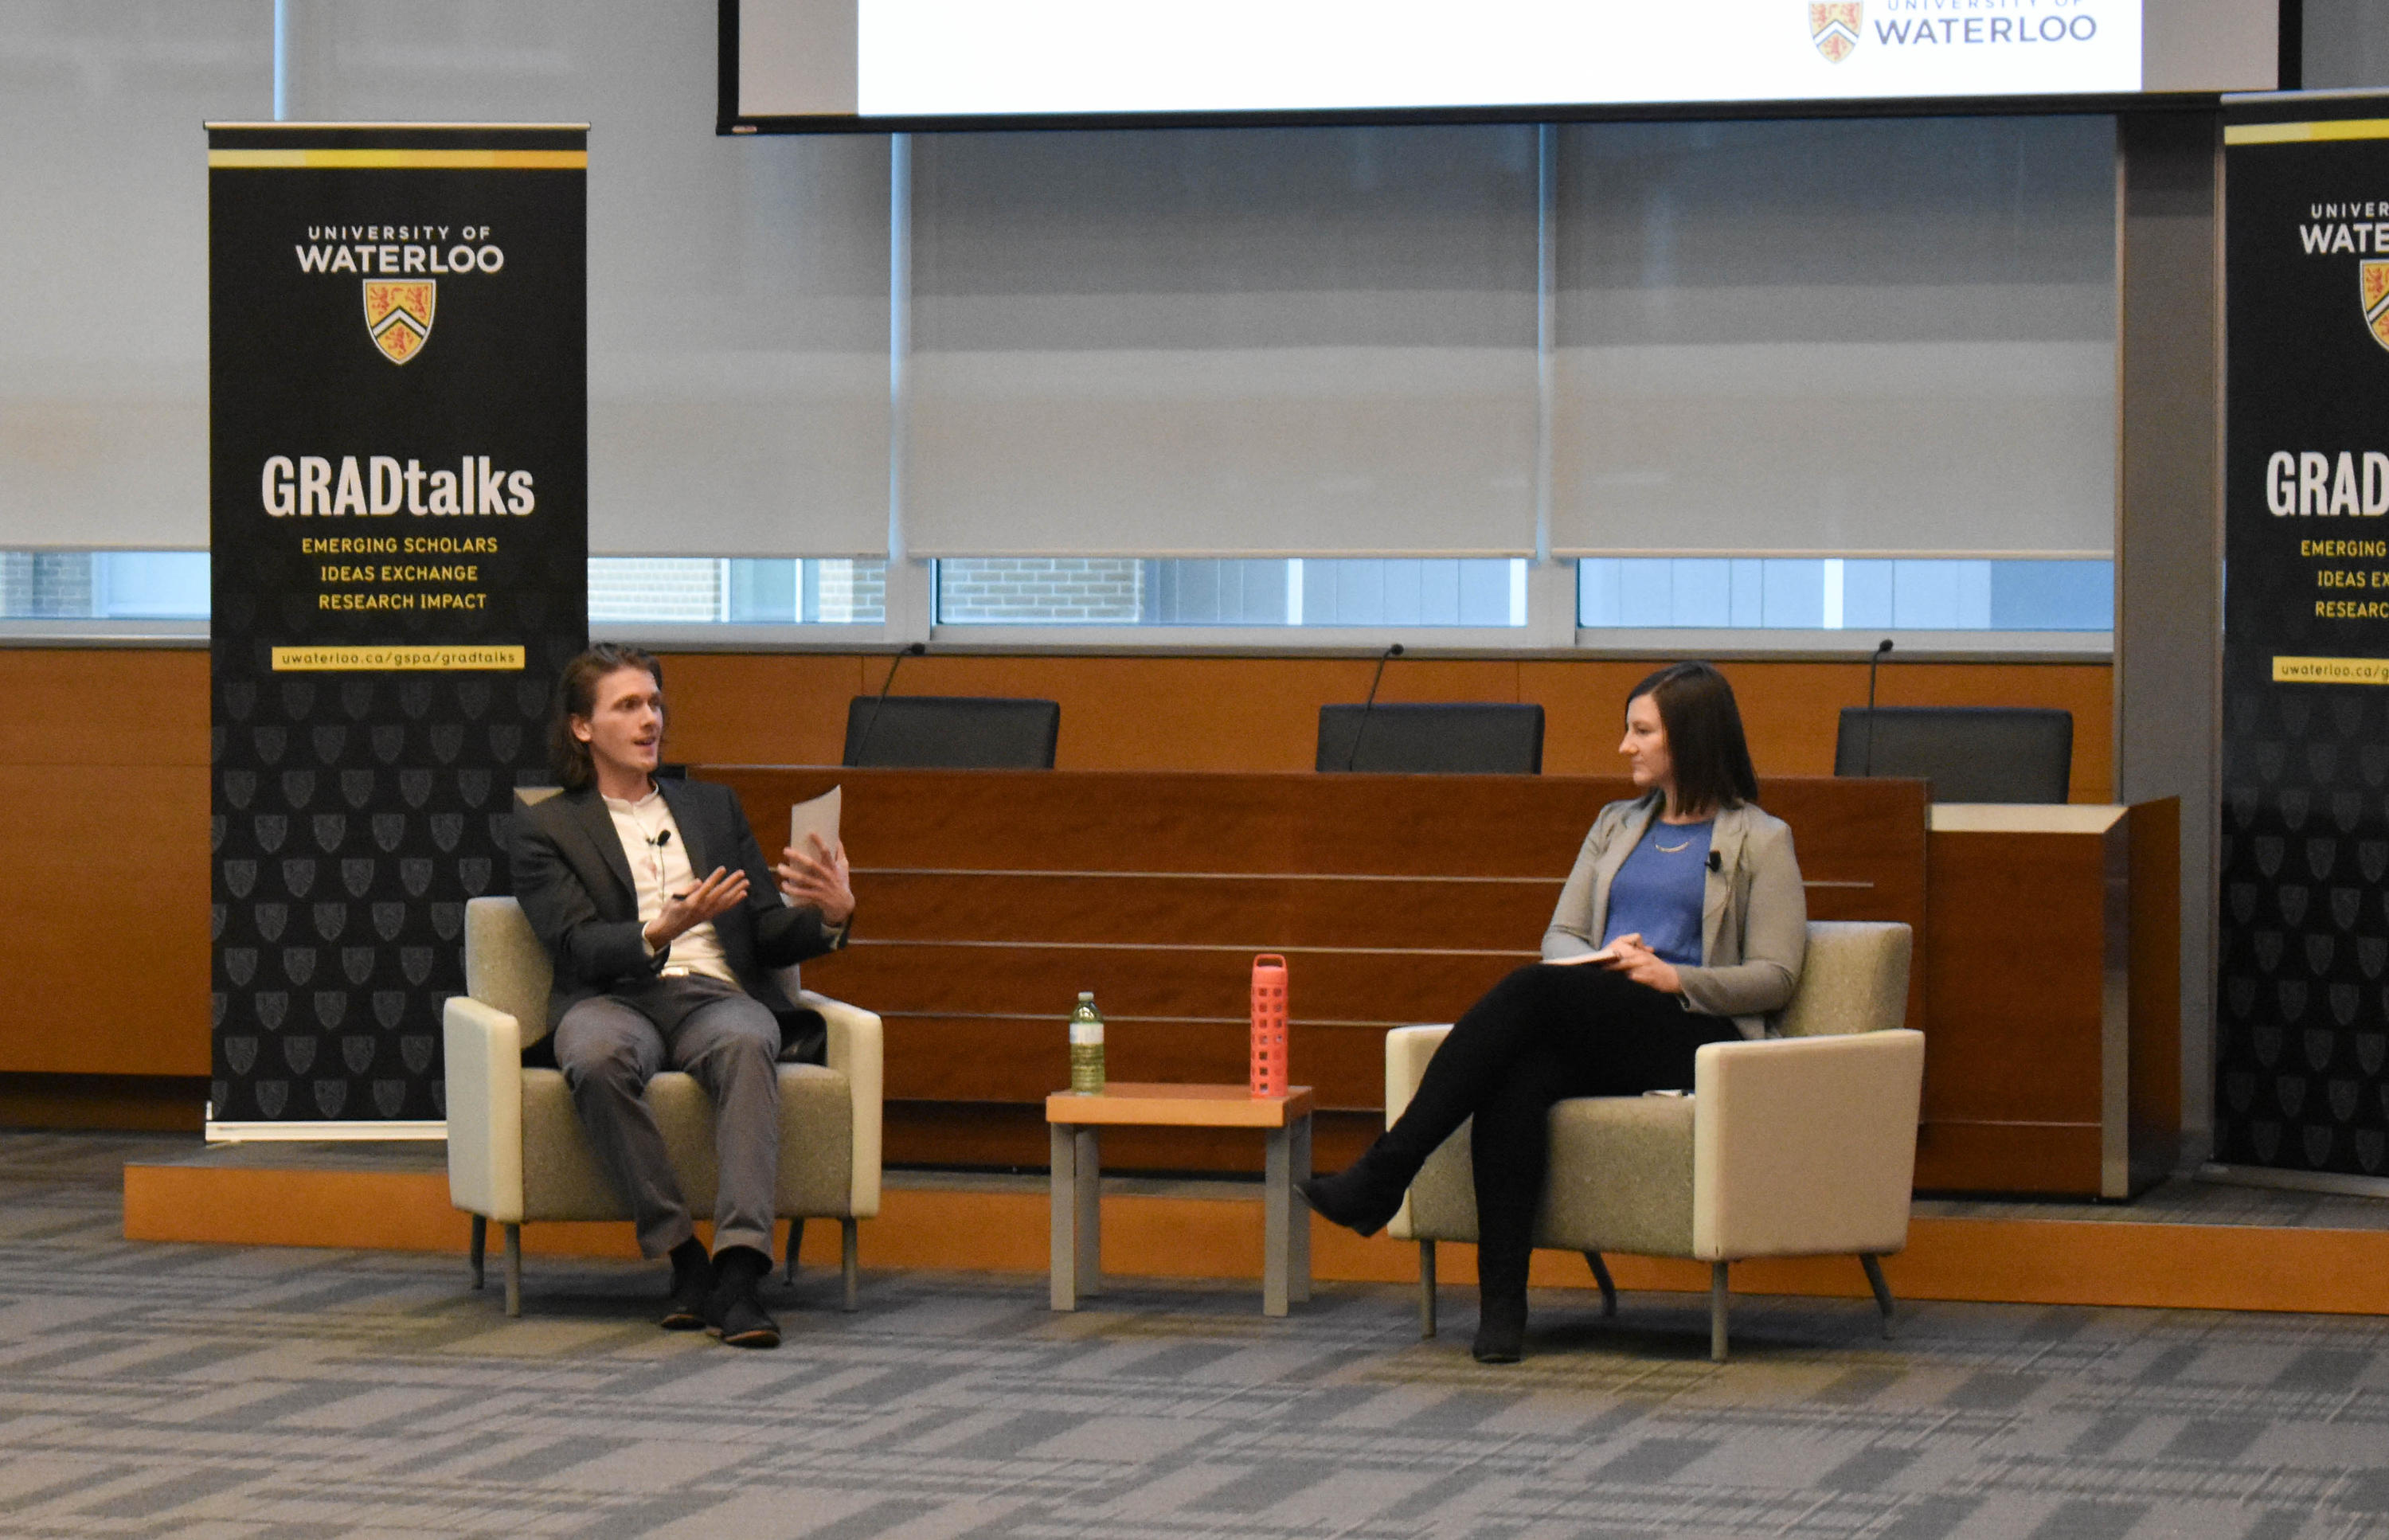 Jason Lajoie and Caitlin Scott at GRADtalks